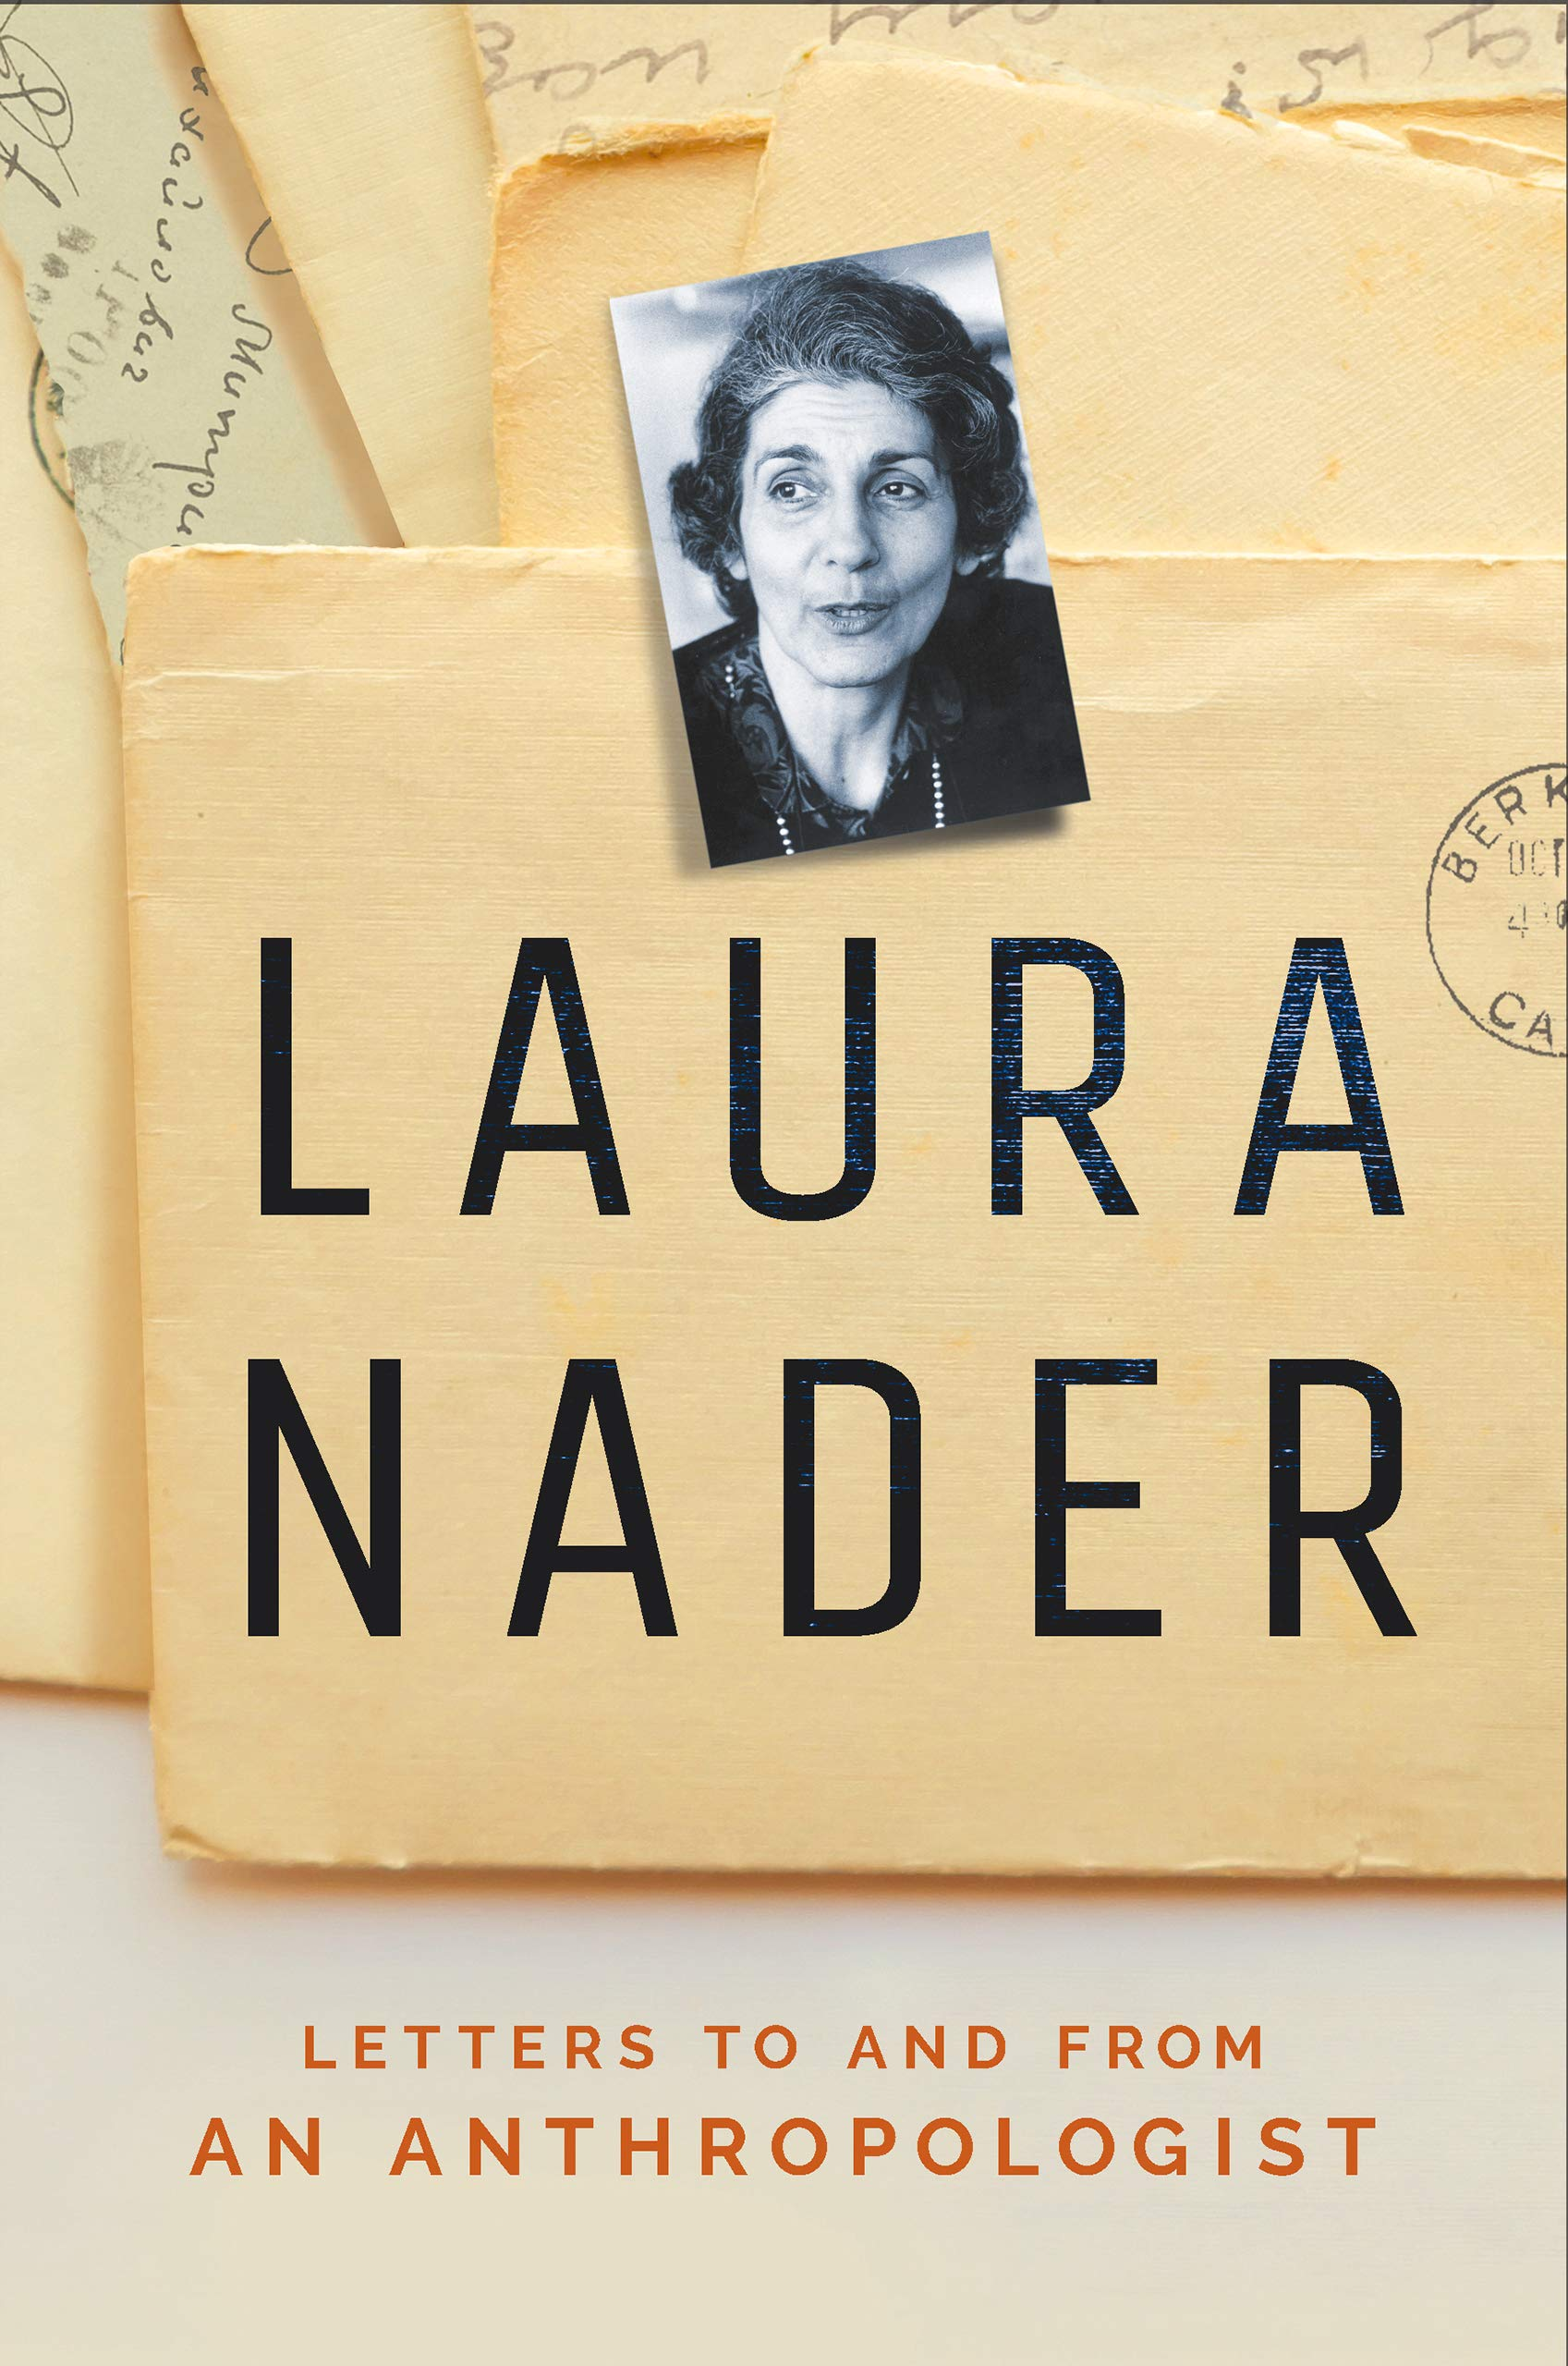 Letters from Laura Nader